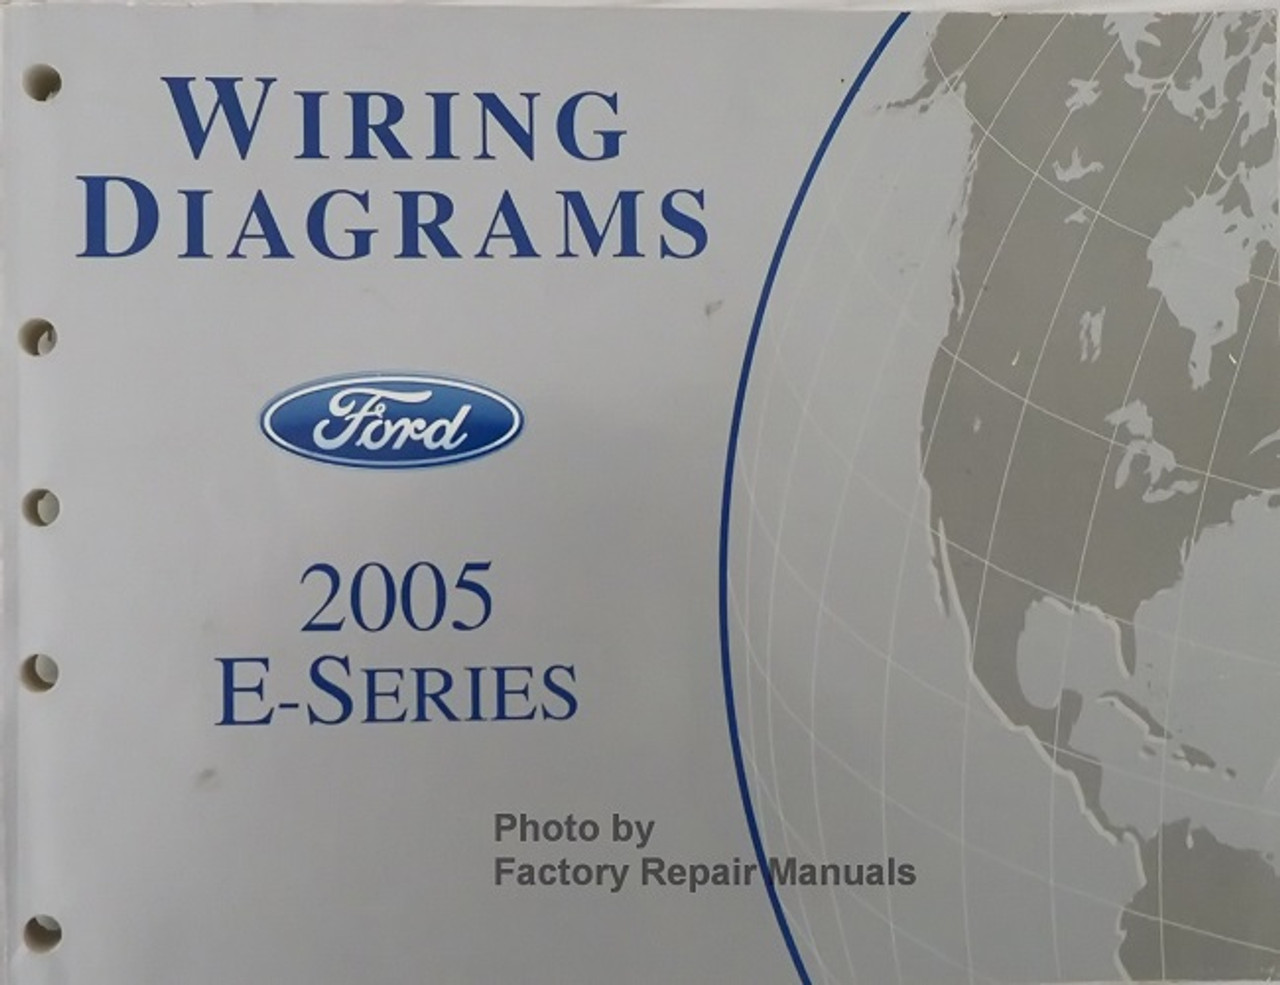 [SCHEMATICS_4UK]  2005 Ford E150 E250 E350 E450 Econoline Van Club Wagon Electrical Wiring  Diagram Manual - Factory Repair Manuals | 05 E250 Wiring Diagram |  | Factory Repair Manuals